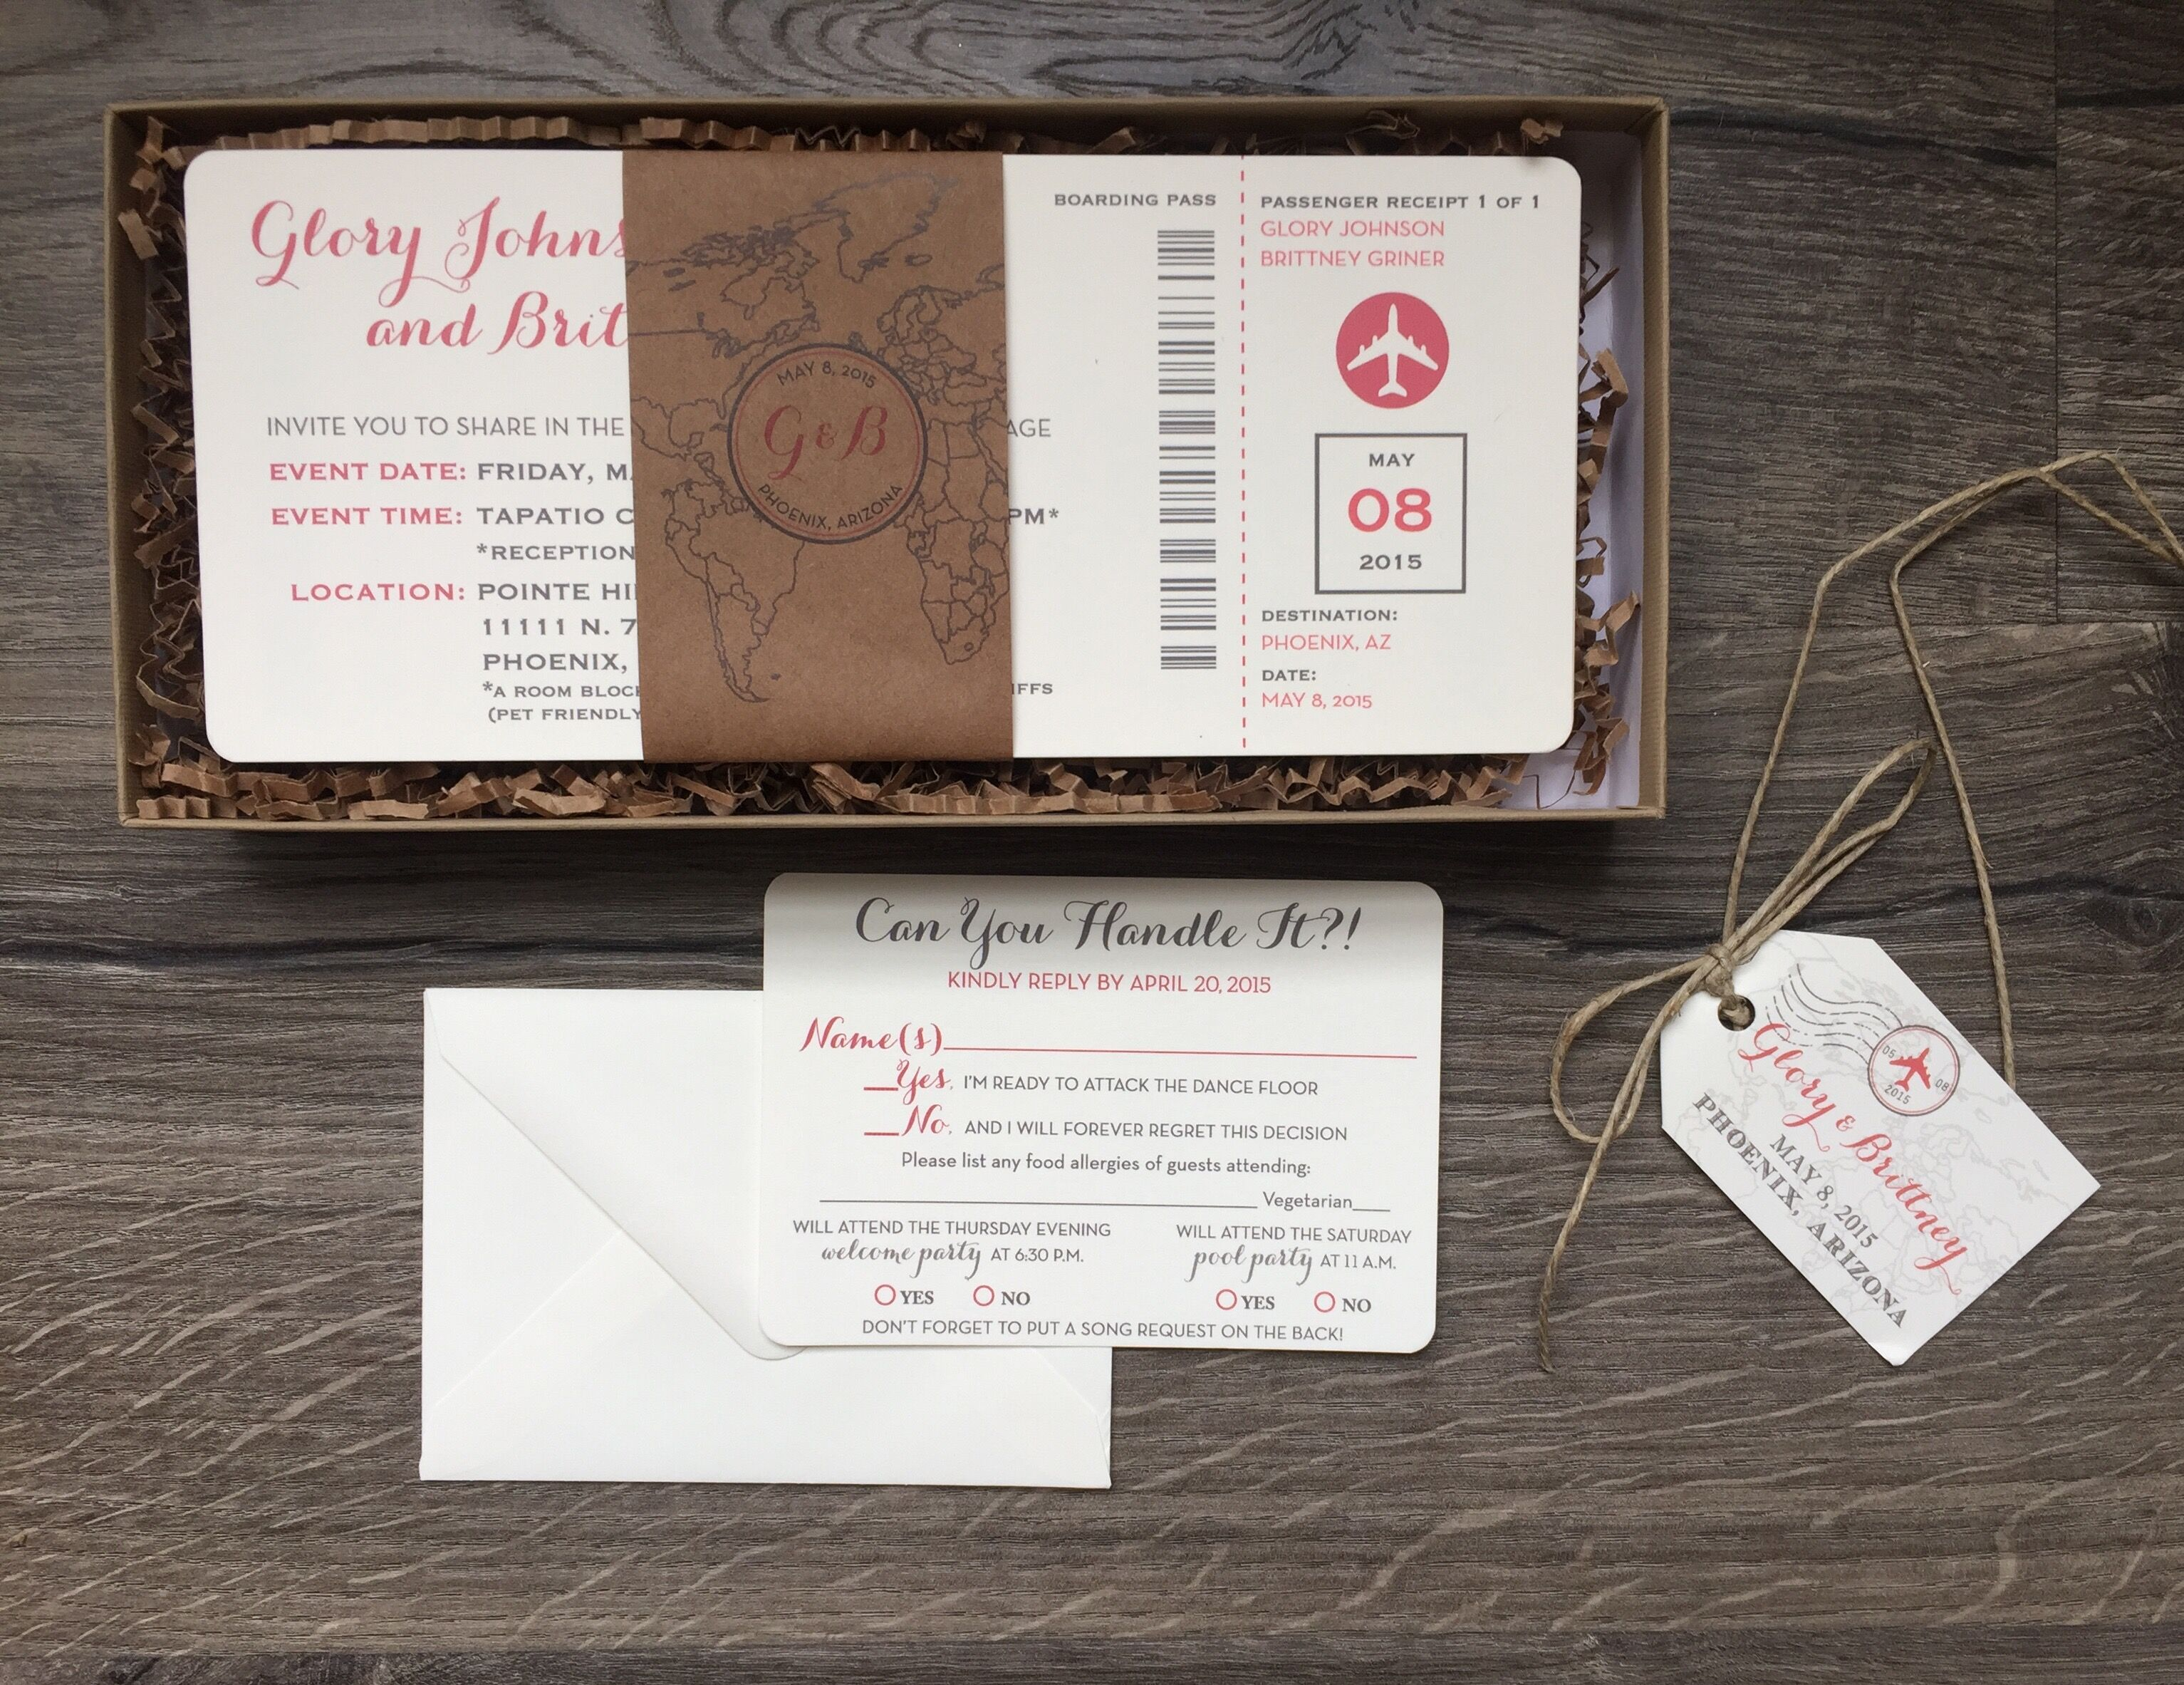 Wedding invitations houston tx the knot view invite wedding invitations houston luxury paper in tx credit to filmwisefo